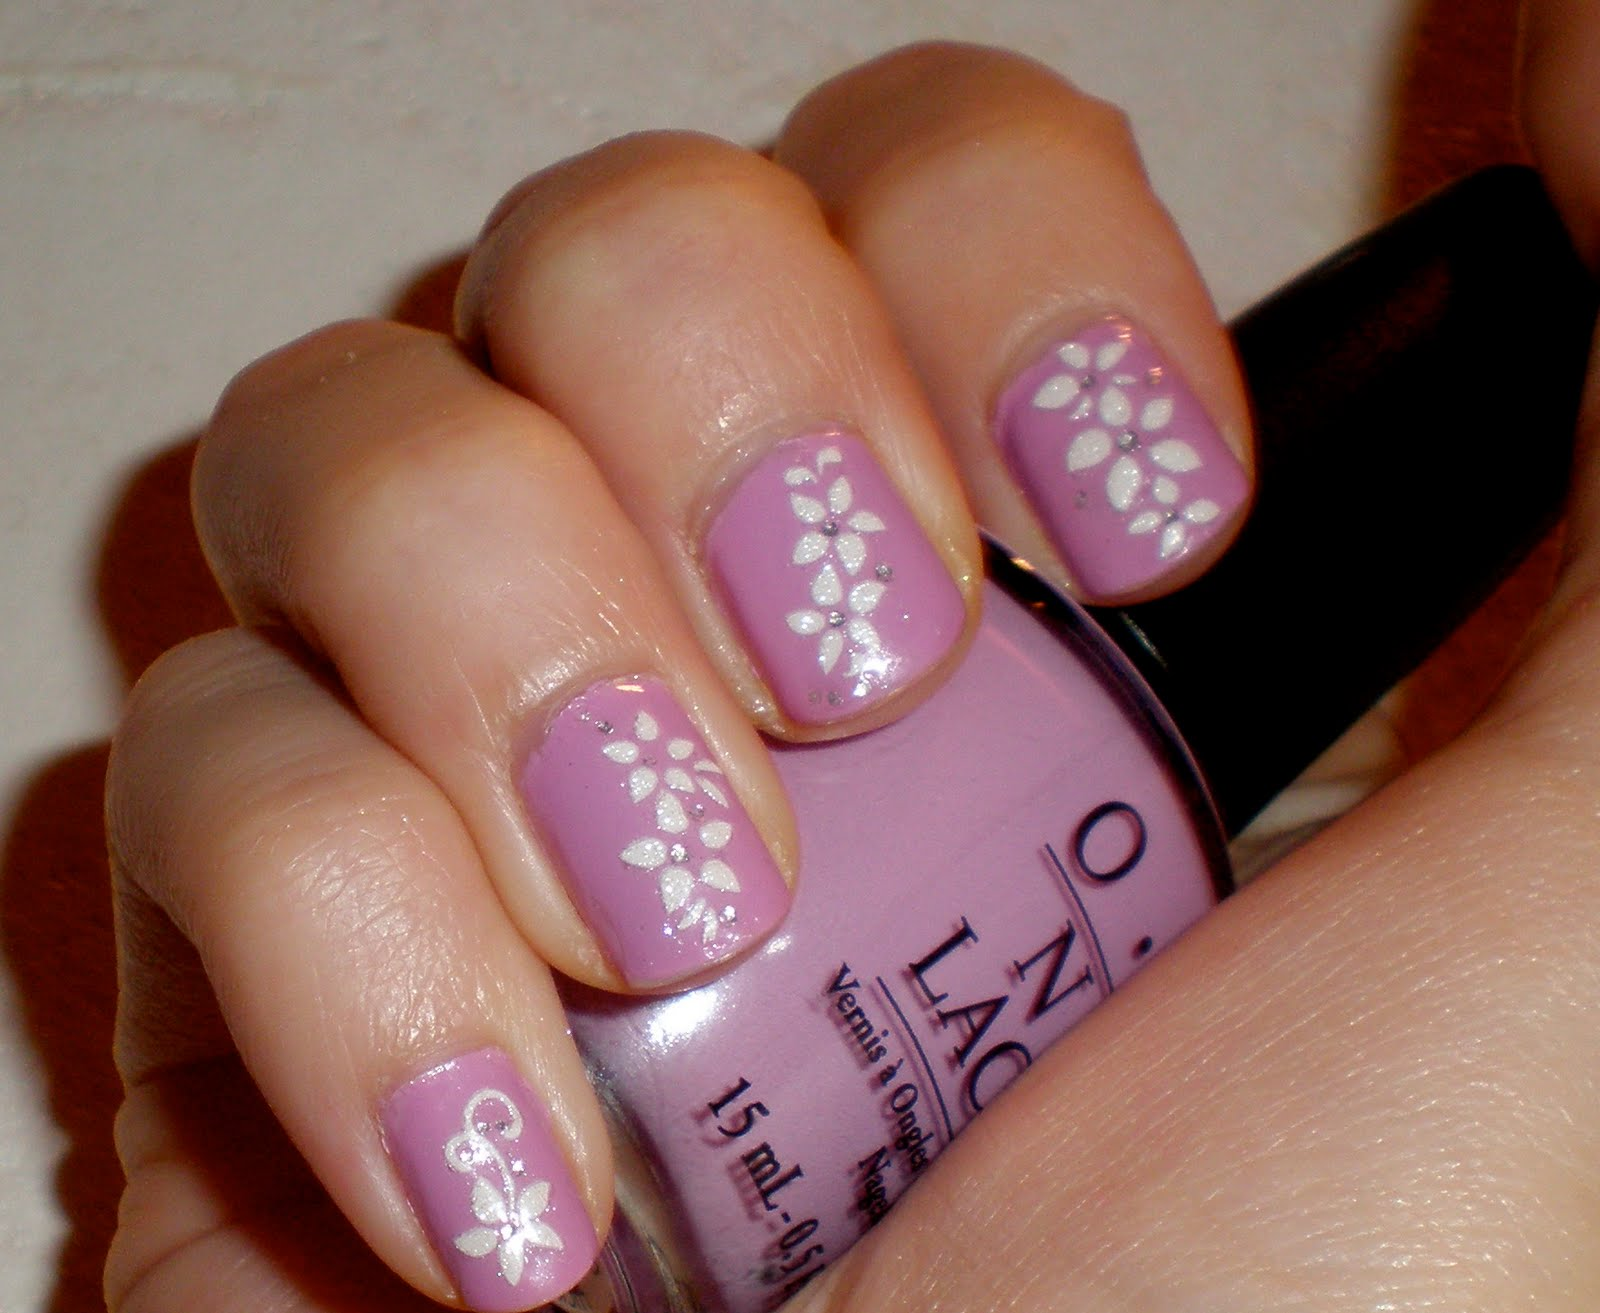 Do it yourself nails designs ledufa stunning with some simple materials and techniques you can create pretty nail designs there are a number of nail art kits that are available commercially solutioingenieria Gallery